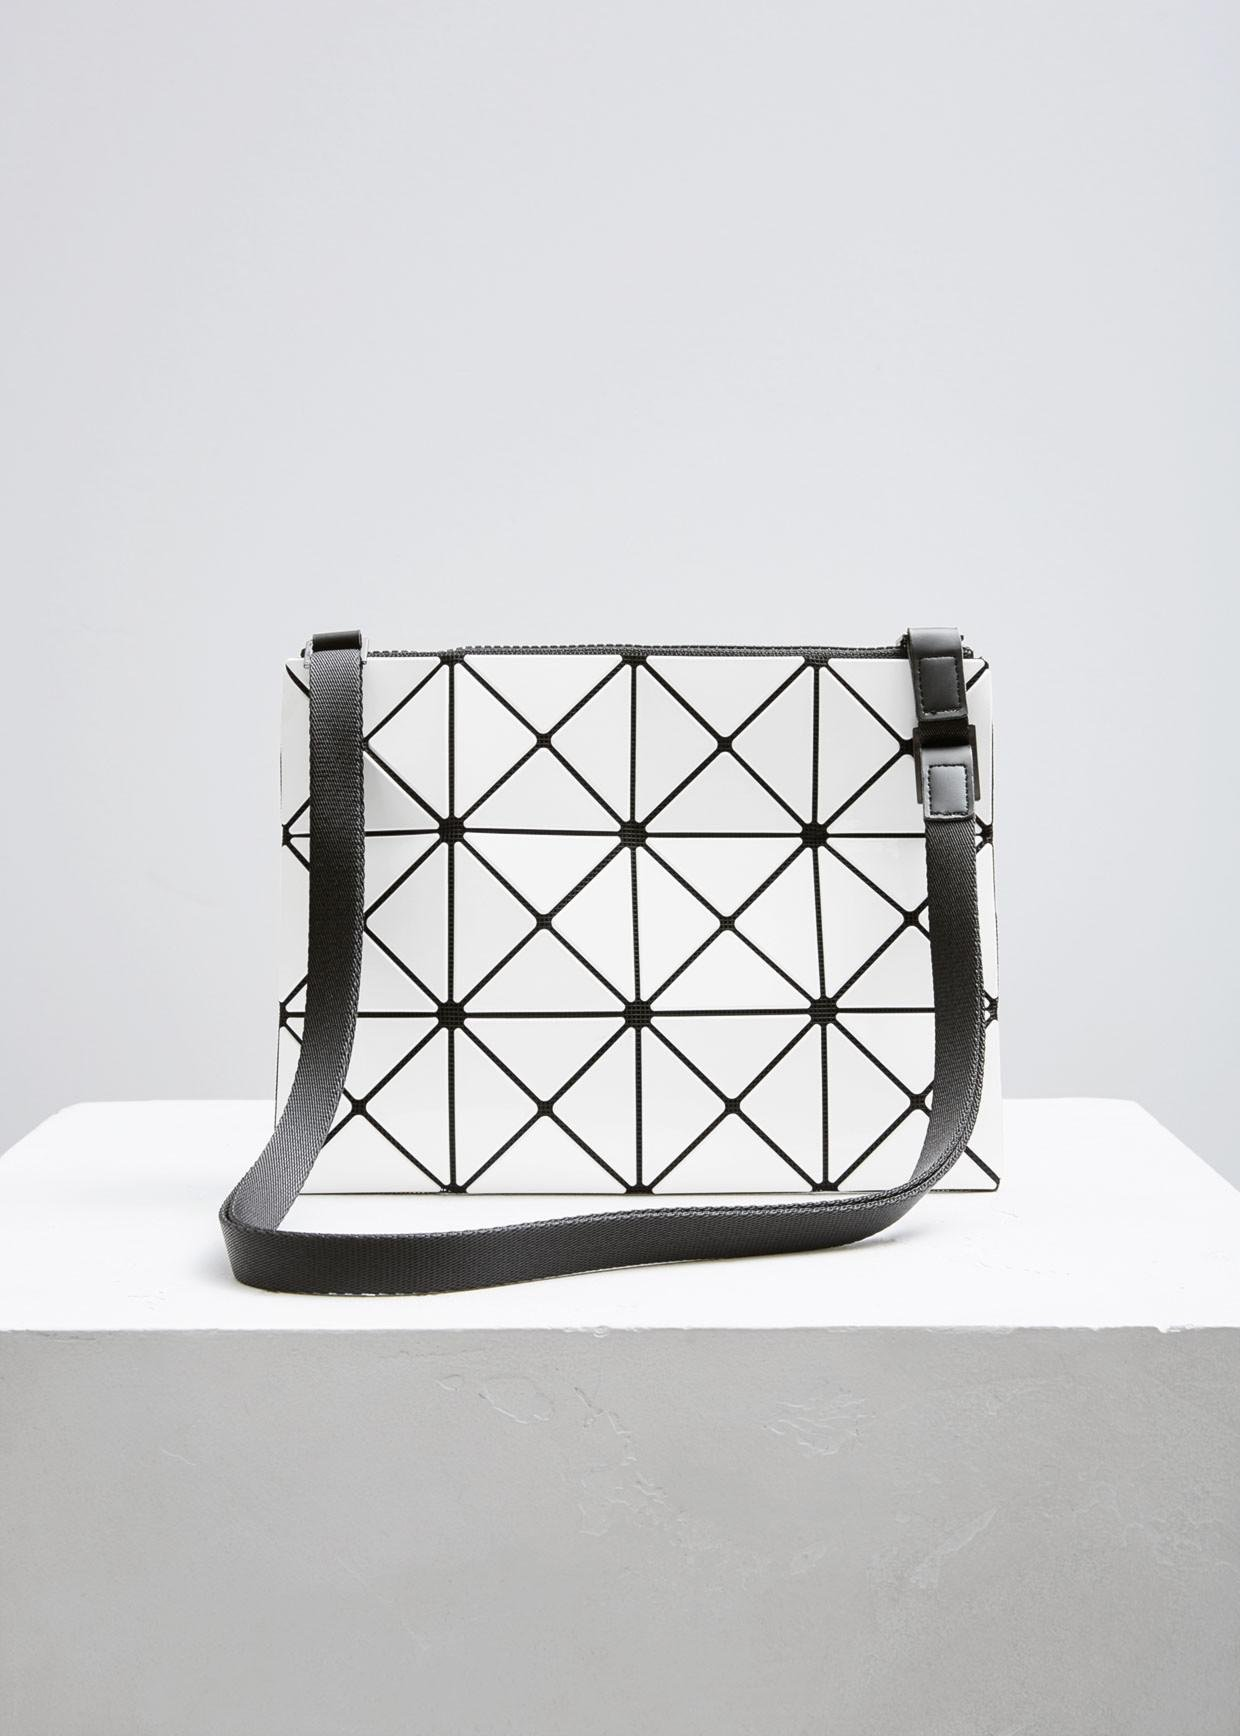 bao bao issey miyake large lucent basic cross body bag white in ... 6af84bf631cc4